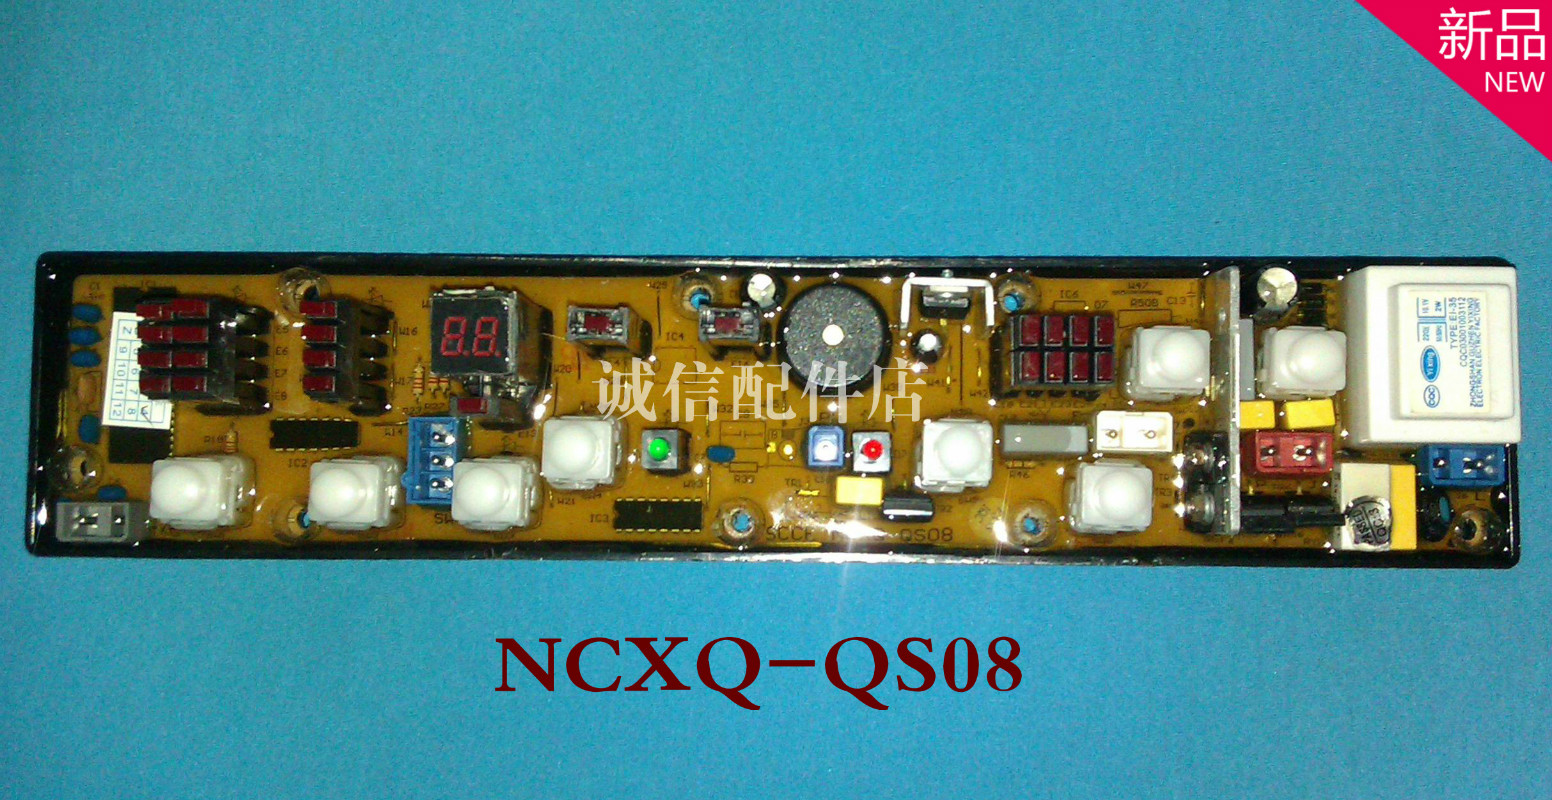 Fuguists xqb60-6078 fully-automatic washing machine board ncxq-qs08 motherboard free shipping 100% tested for tcl washing machine board xqb55 51sz motherboard ncxq 9688 on sale